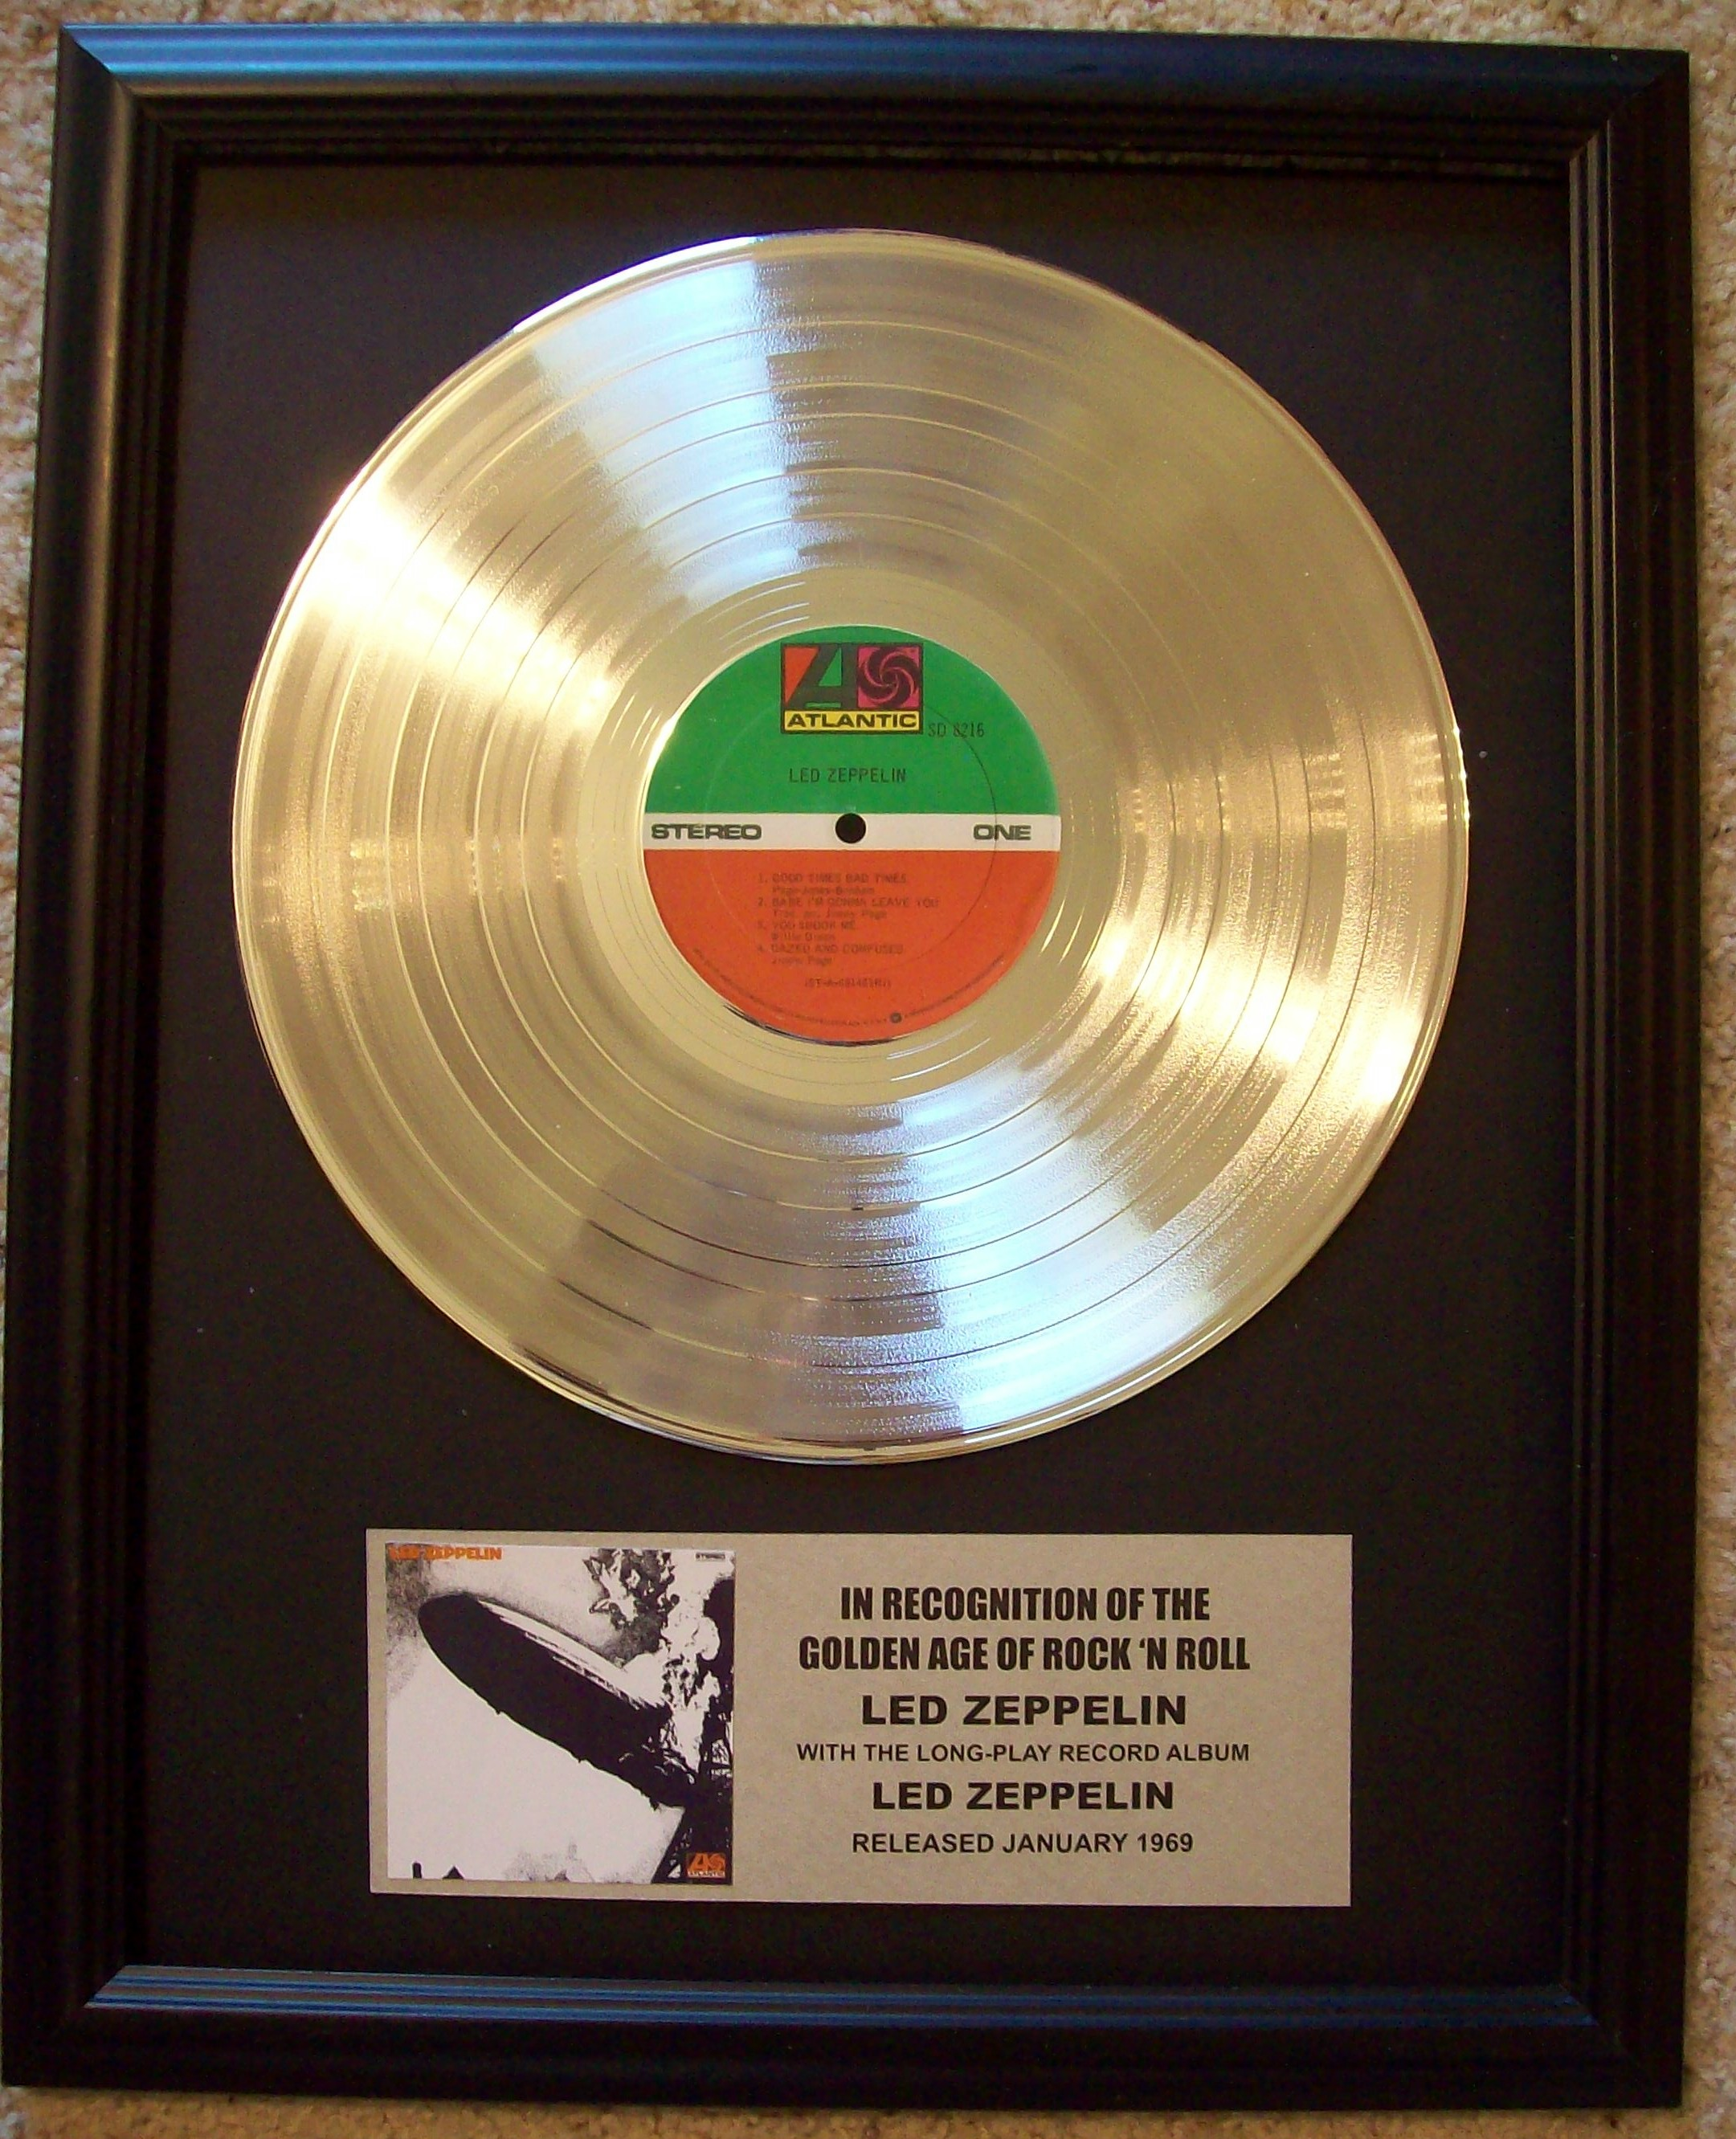 Image for Led Zeppelin (First Album) Platinum Record